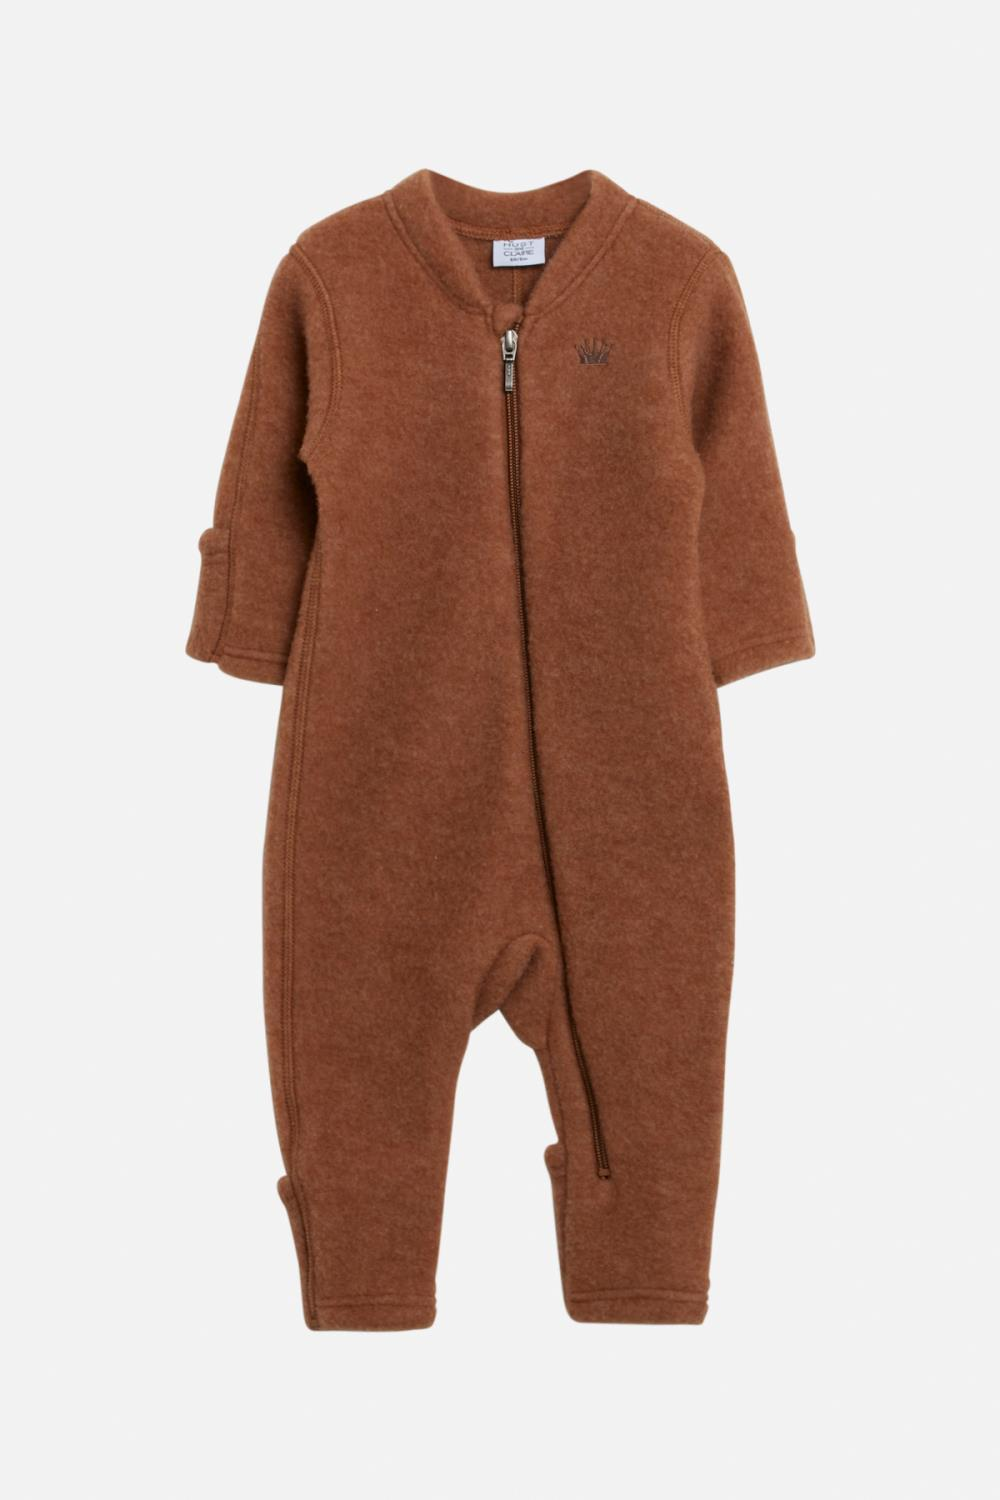 Hust and Claire - AW 20 Heldress Merlini merinoull, cognac